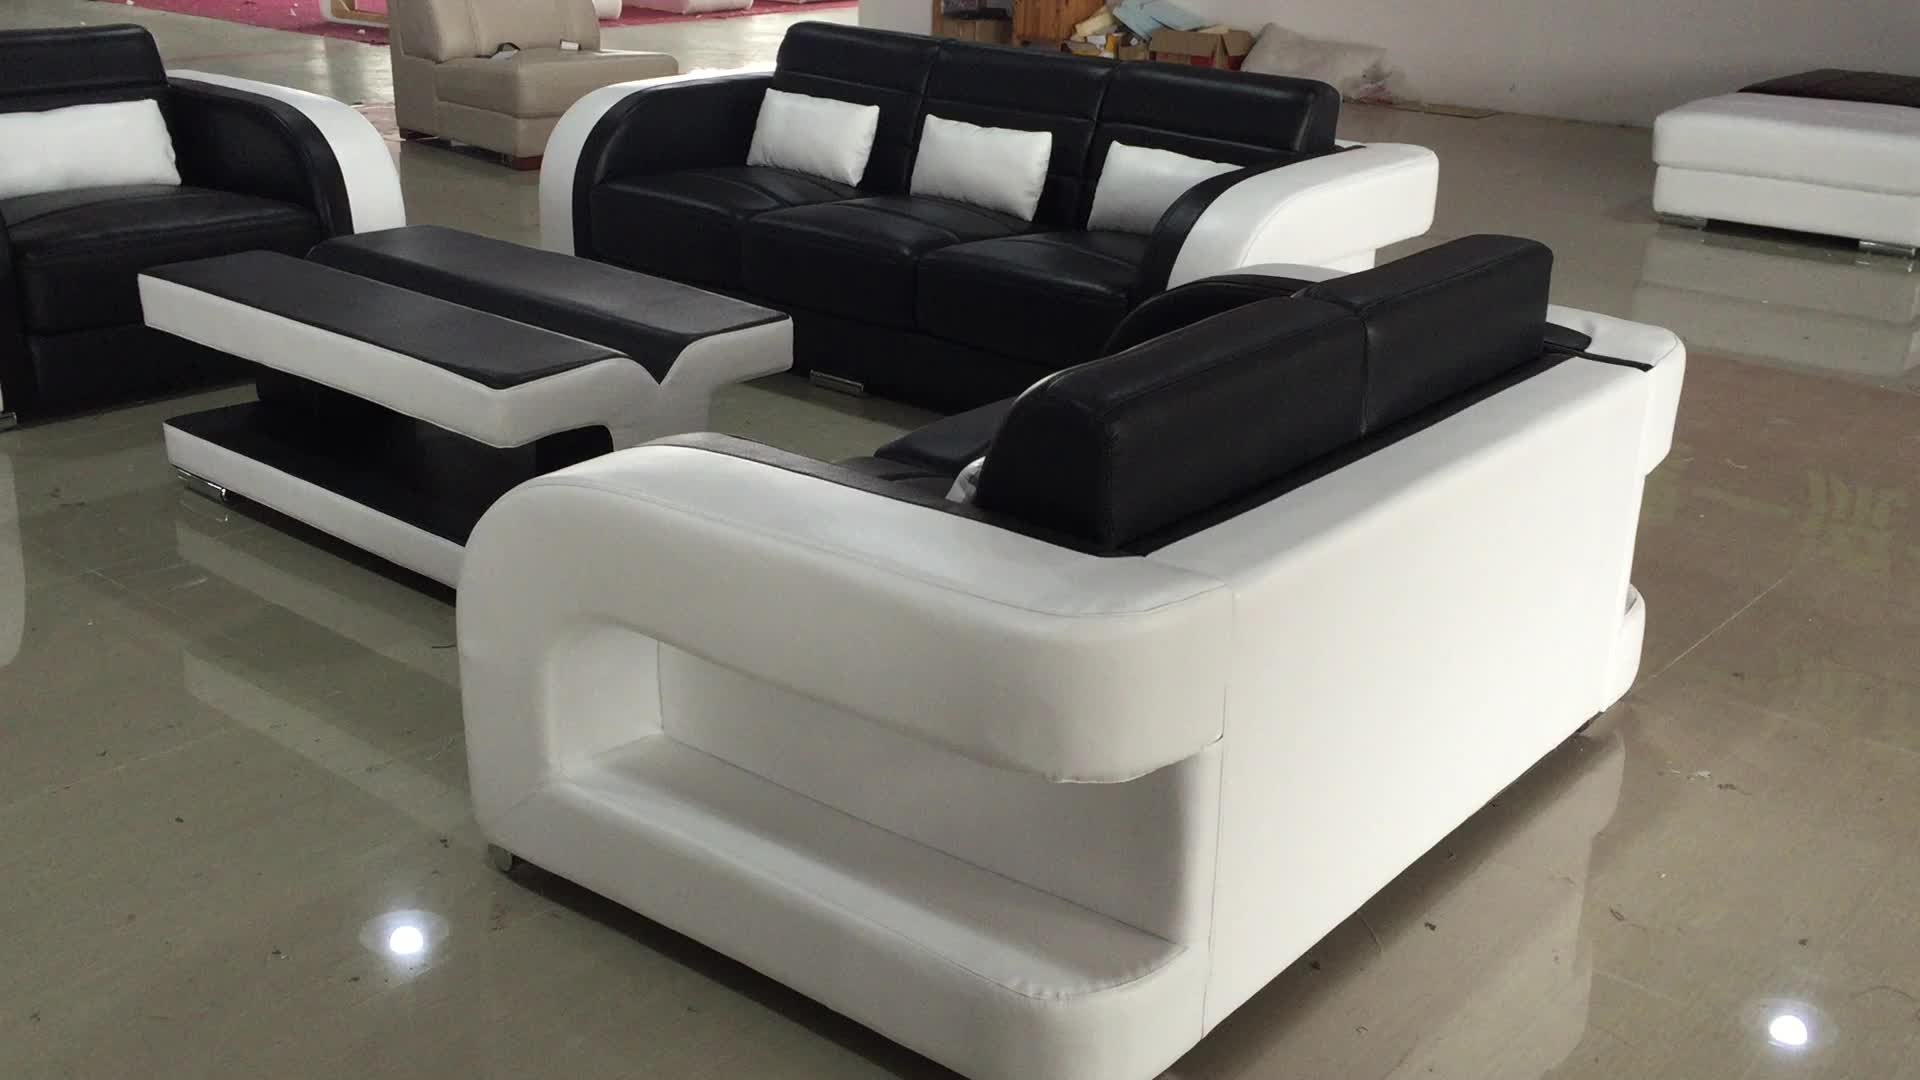 new model sofa china black leather sectional recliner and white color sets pictures buy